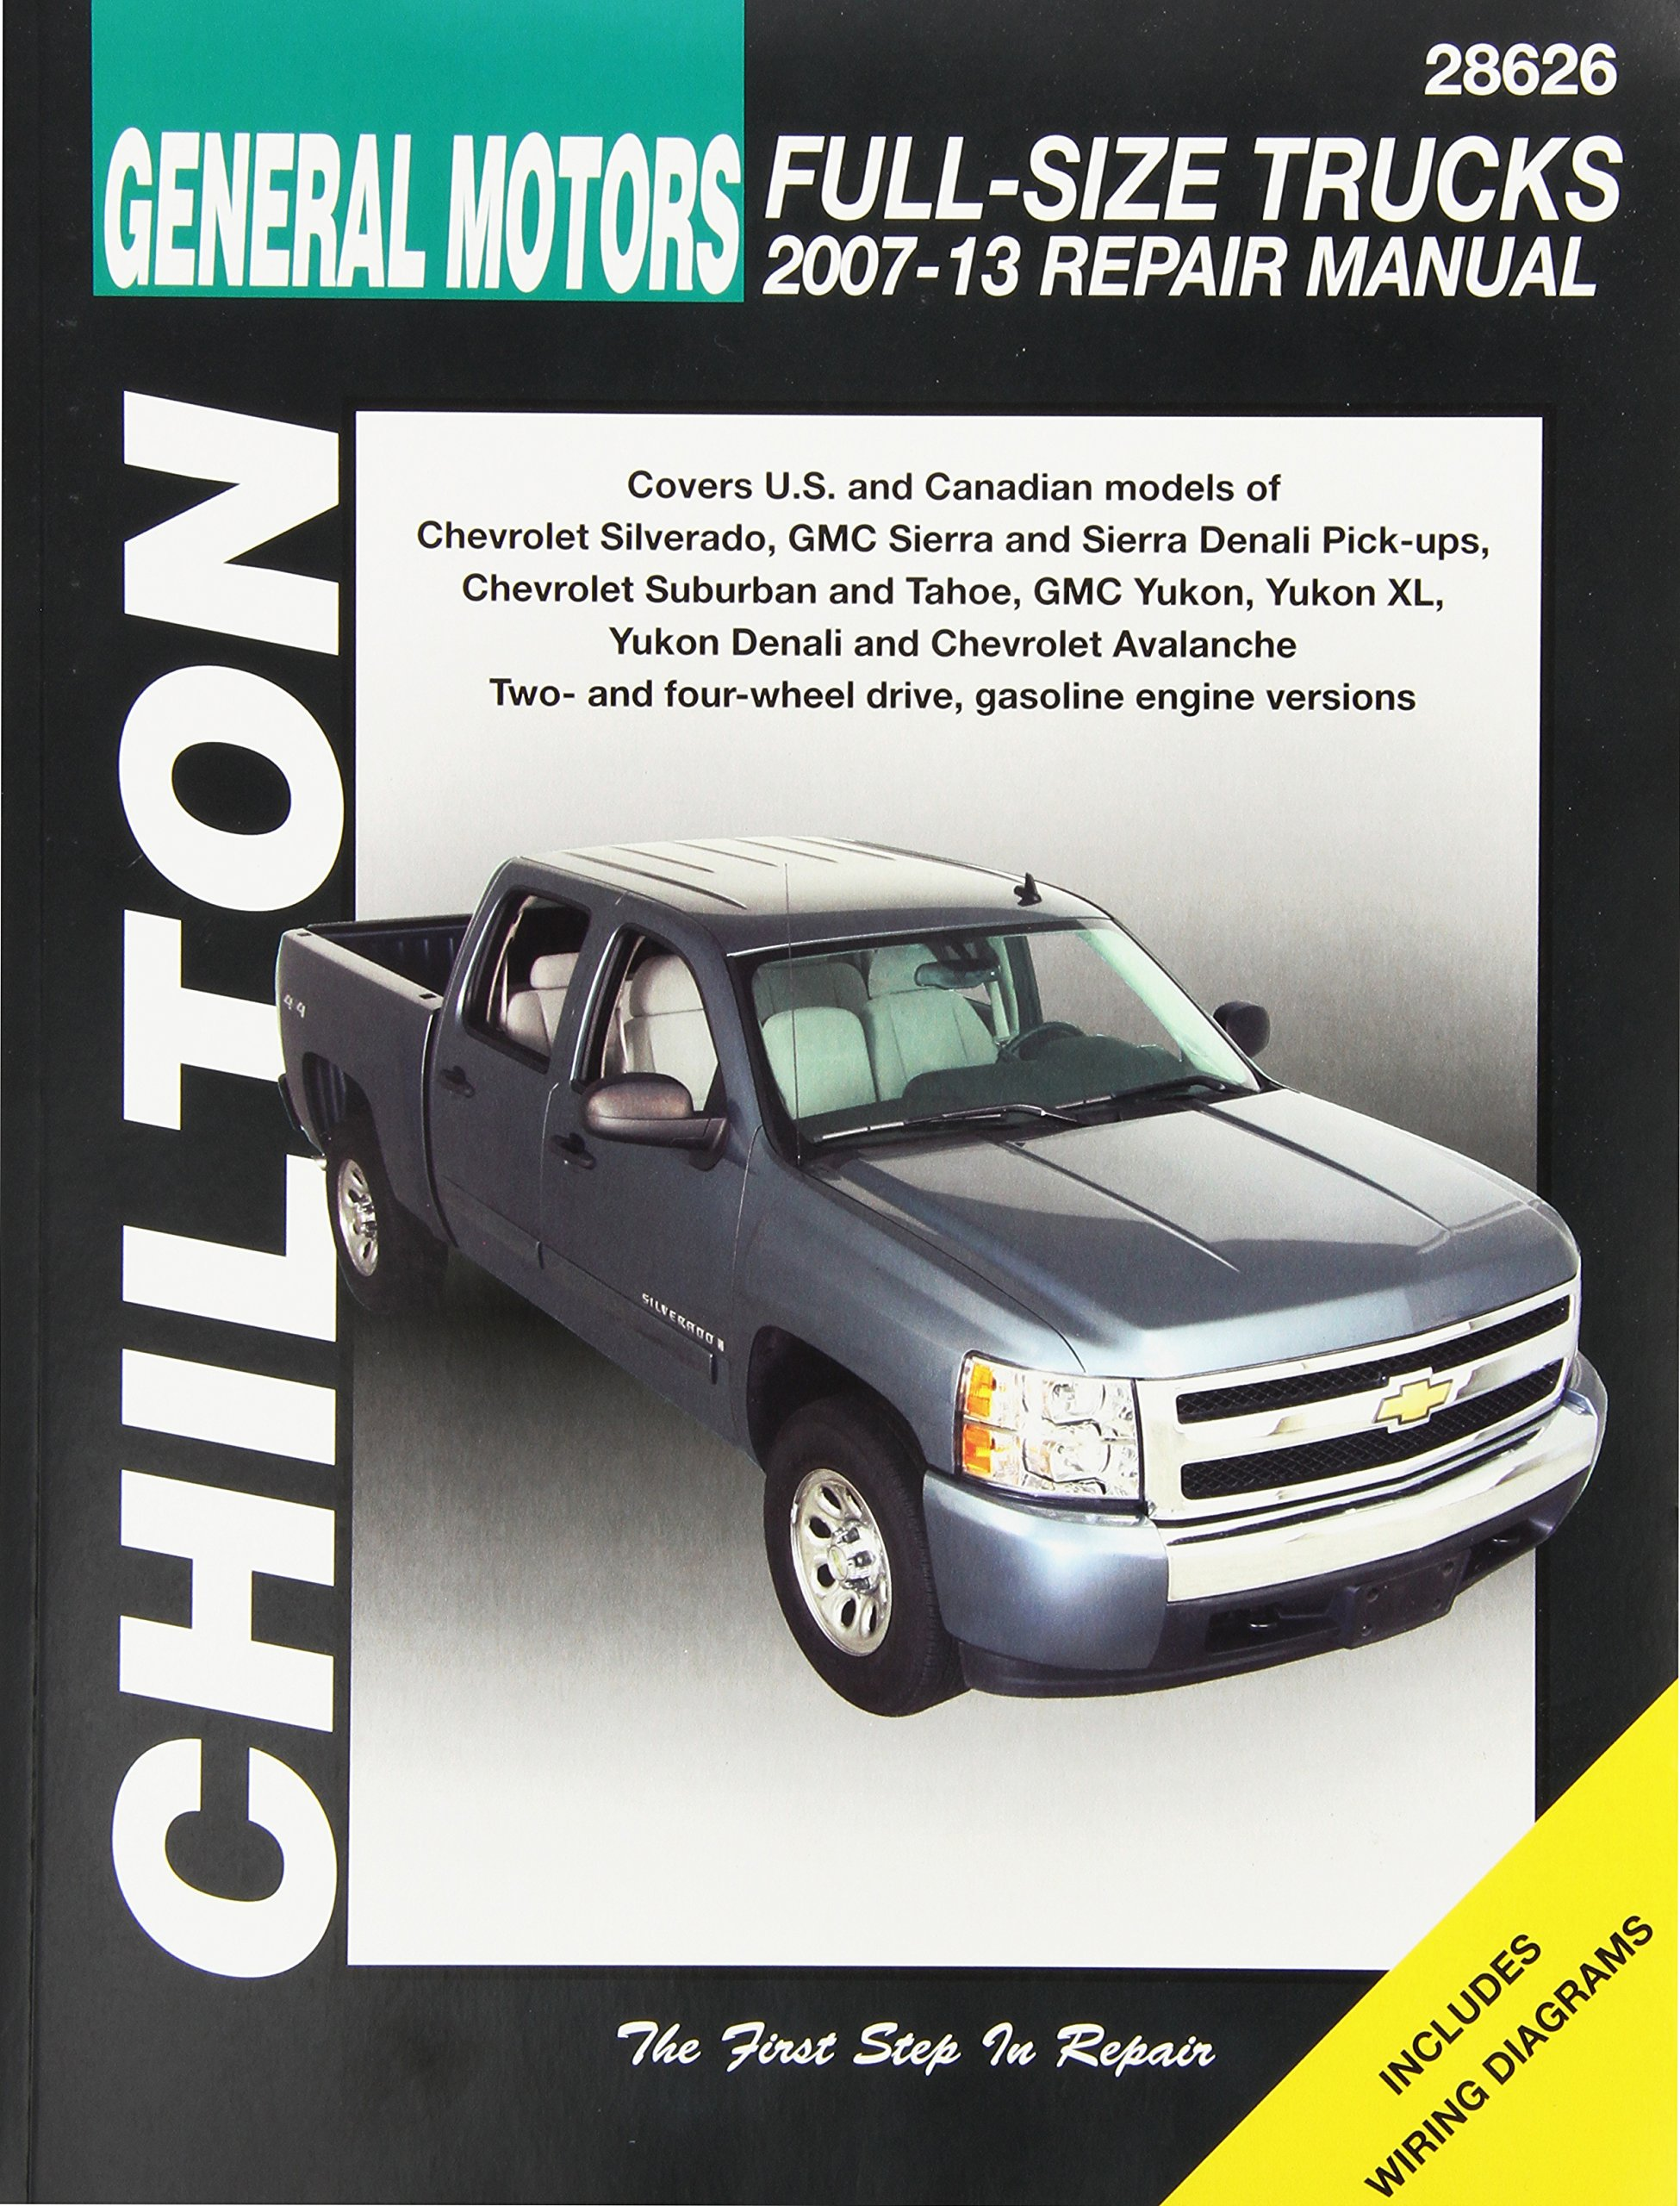 amazon com gm full size trucks chilton repair manual 2007 2012 rh amazon com 2001 Chevrolet Avalanche 2003 Chevrolet Avalanche Crew Cab